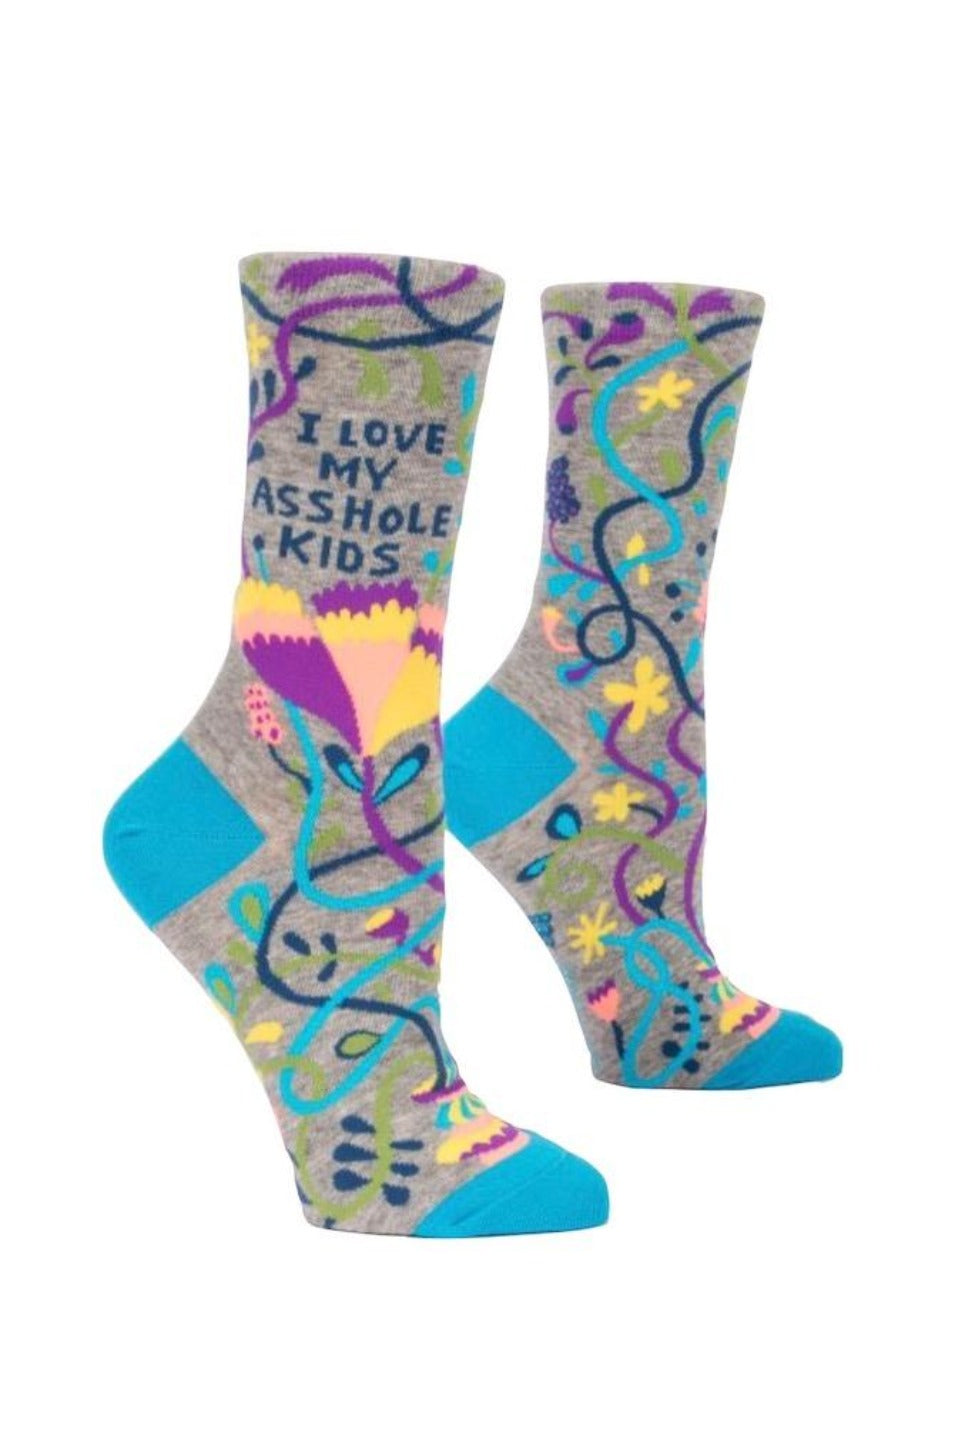 I Love My A**hole Kids Women's Crew Socks